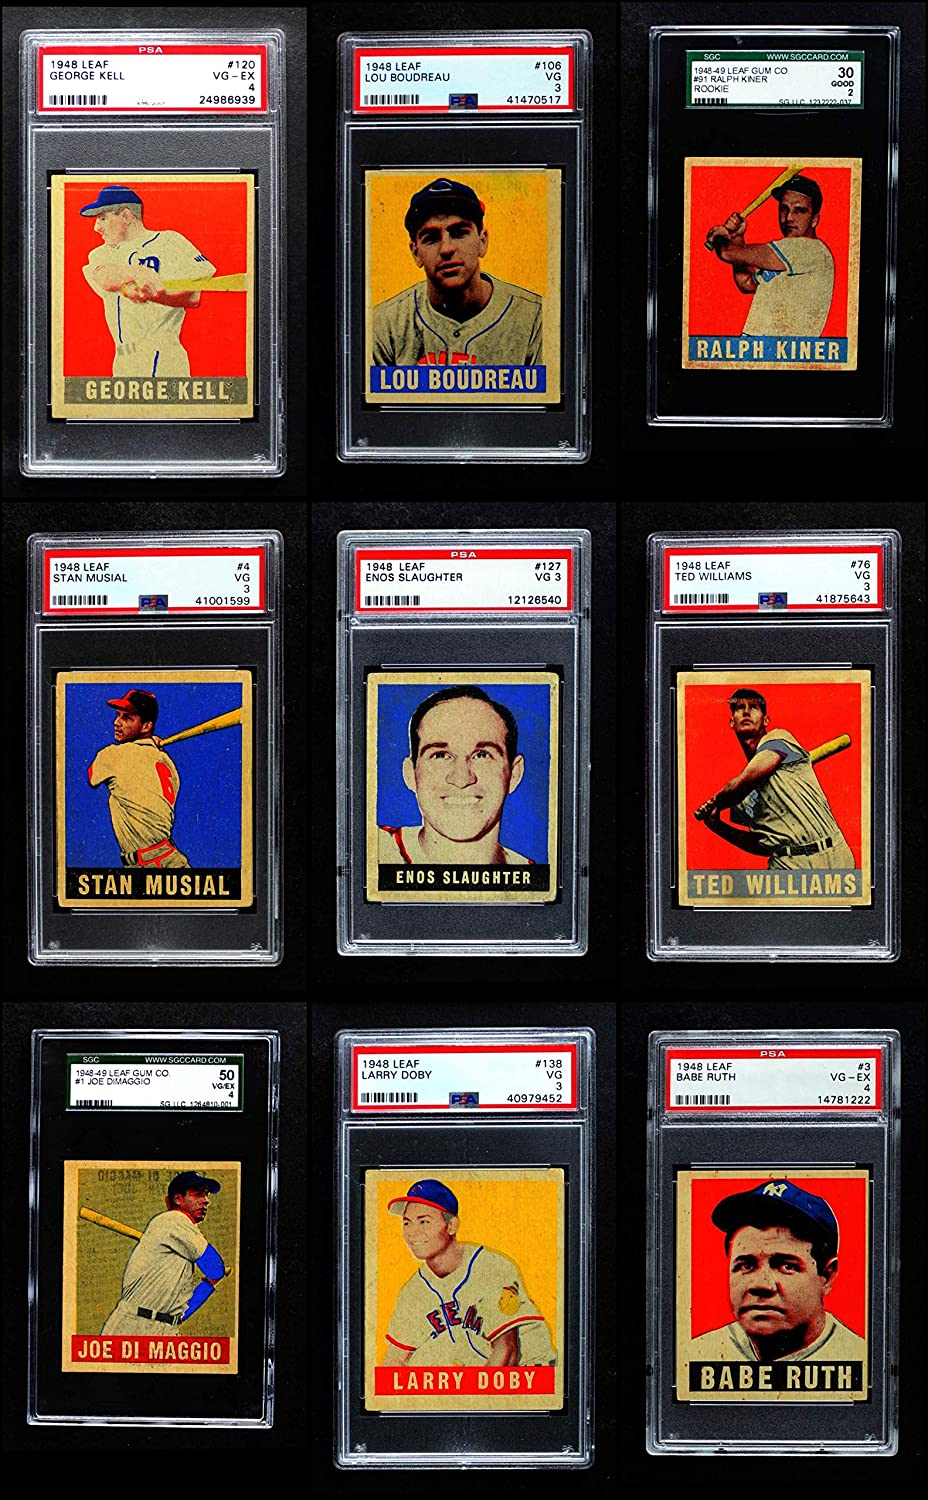 1948-49 Leaf Almost Complete Set (Baseball Set) Dean's Cards 3.5 - VG+ 917H646vVNLSL1500_